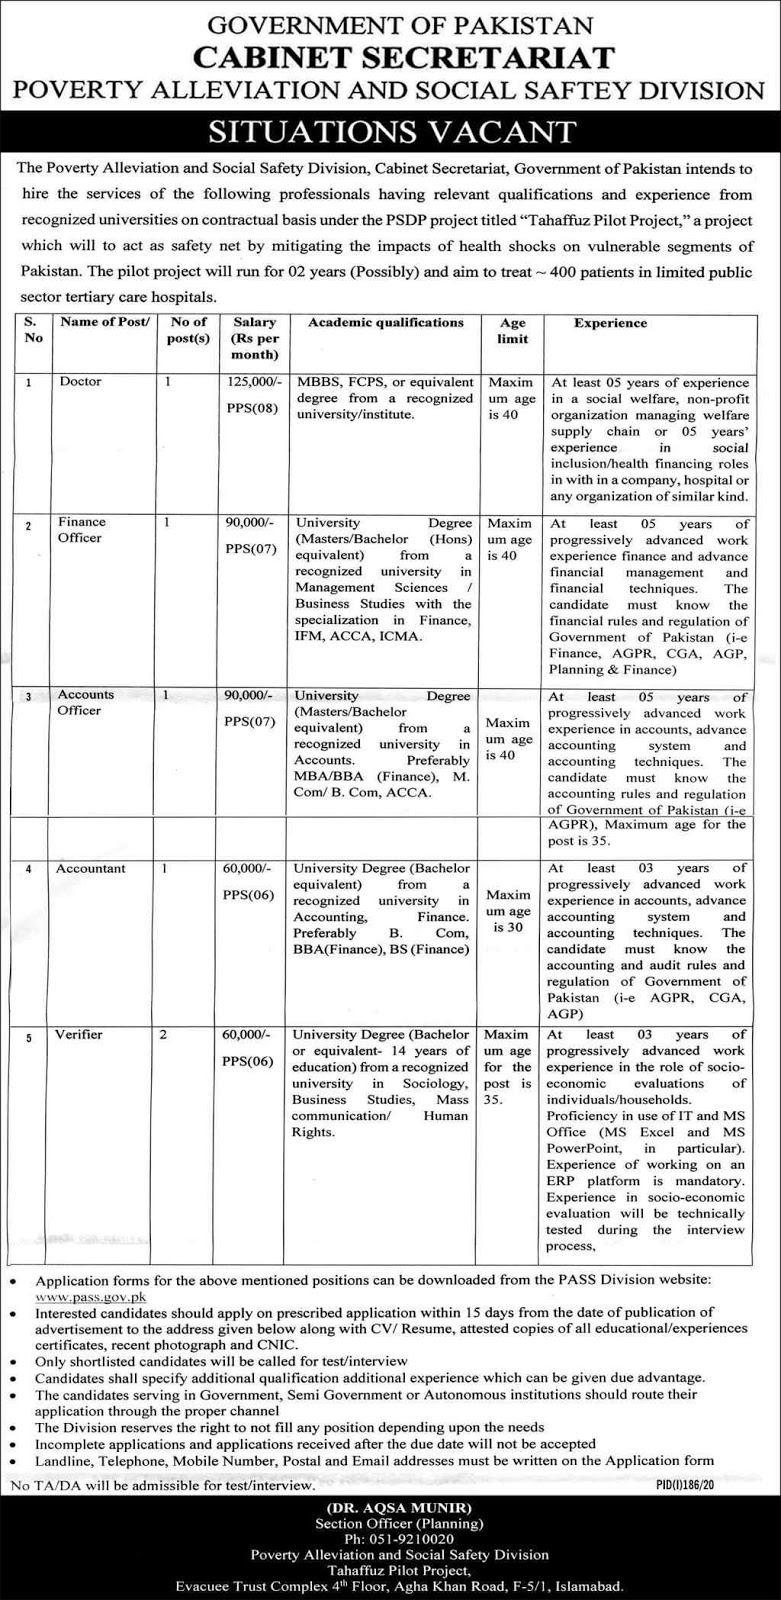 Poverty Alleviation And Social Safety Division Jobs 2020 for Finance Officer, Accounts Officer, Accountant & more